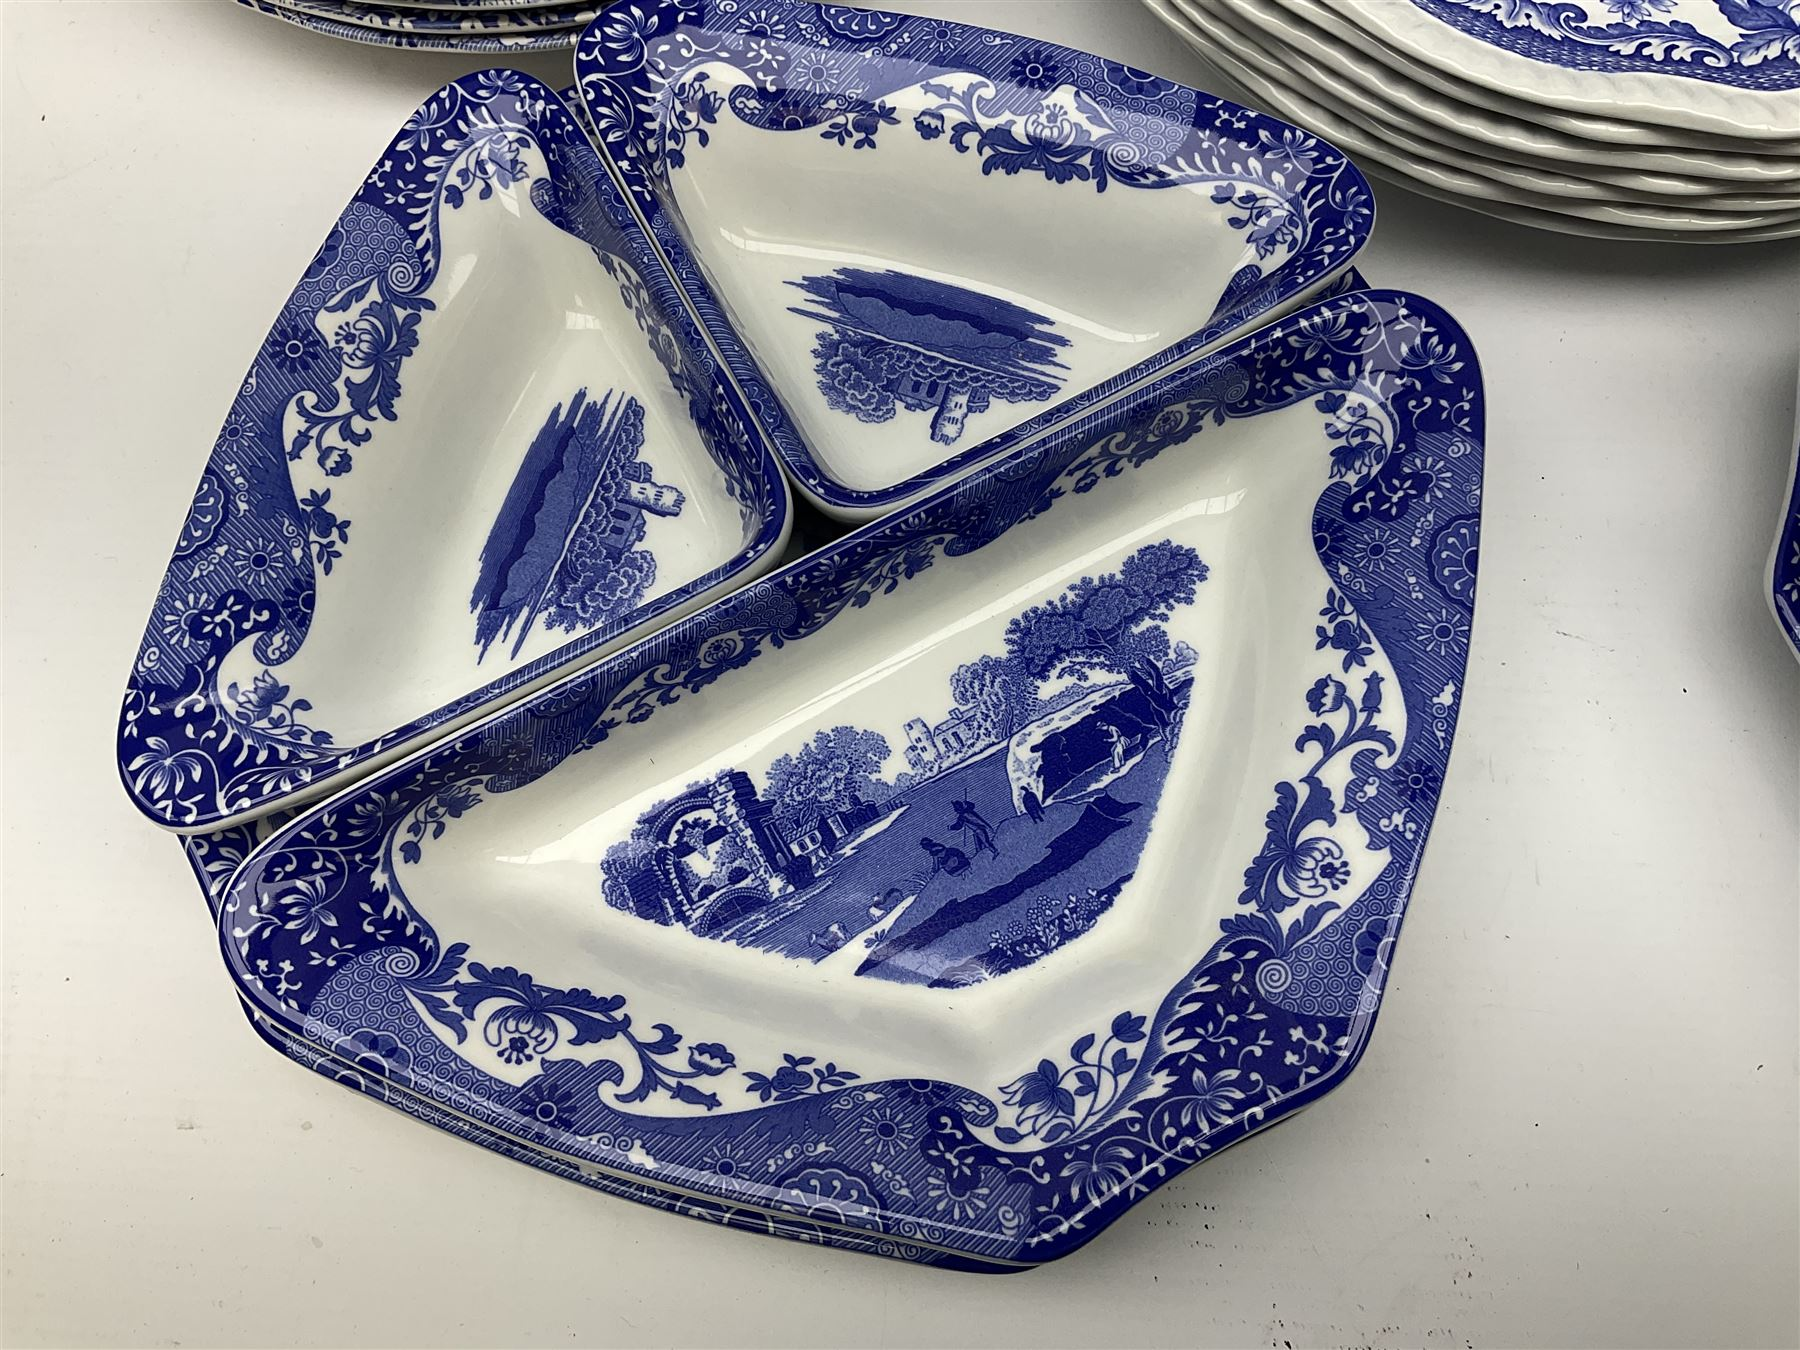 A collection of Spode blue and white ceramics